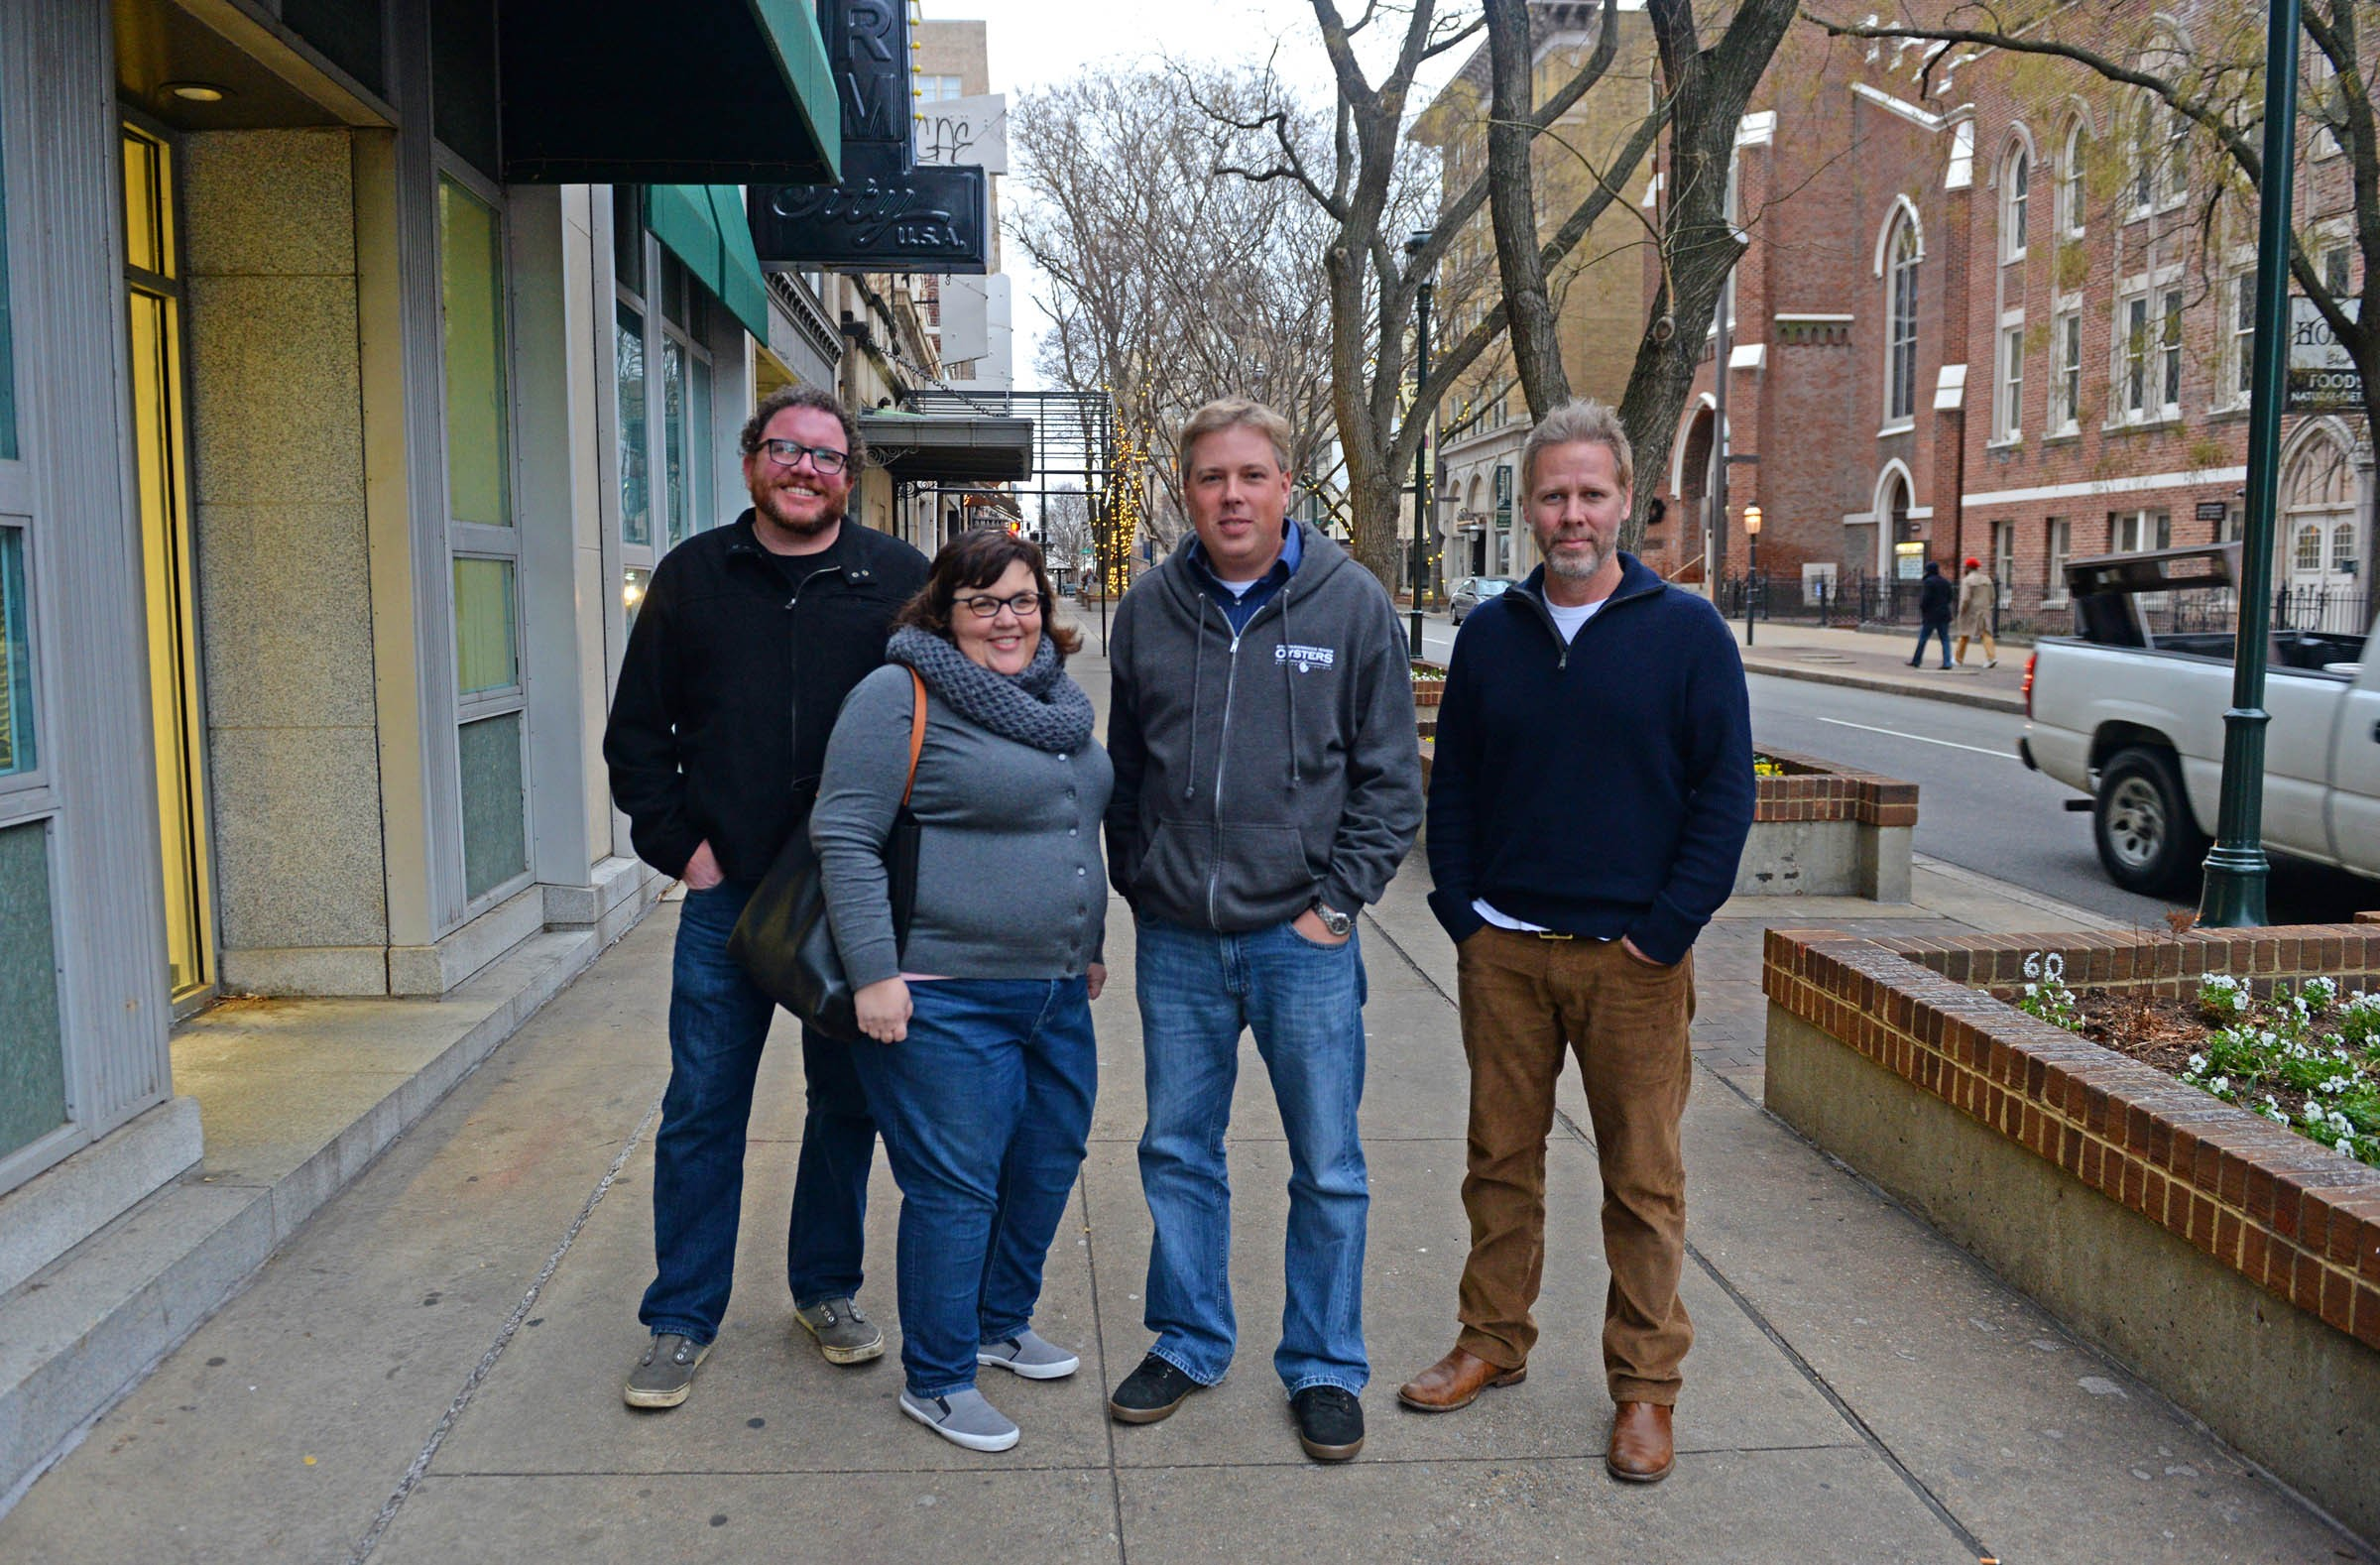 Among those drawing diners to Grace Street are Jason Alley and Michele Jones, of Pasture, and cousins Travis and Ryan Croxton of Rappahannock. - SCOTT ELMQUIST